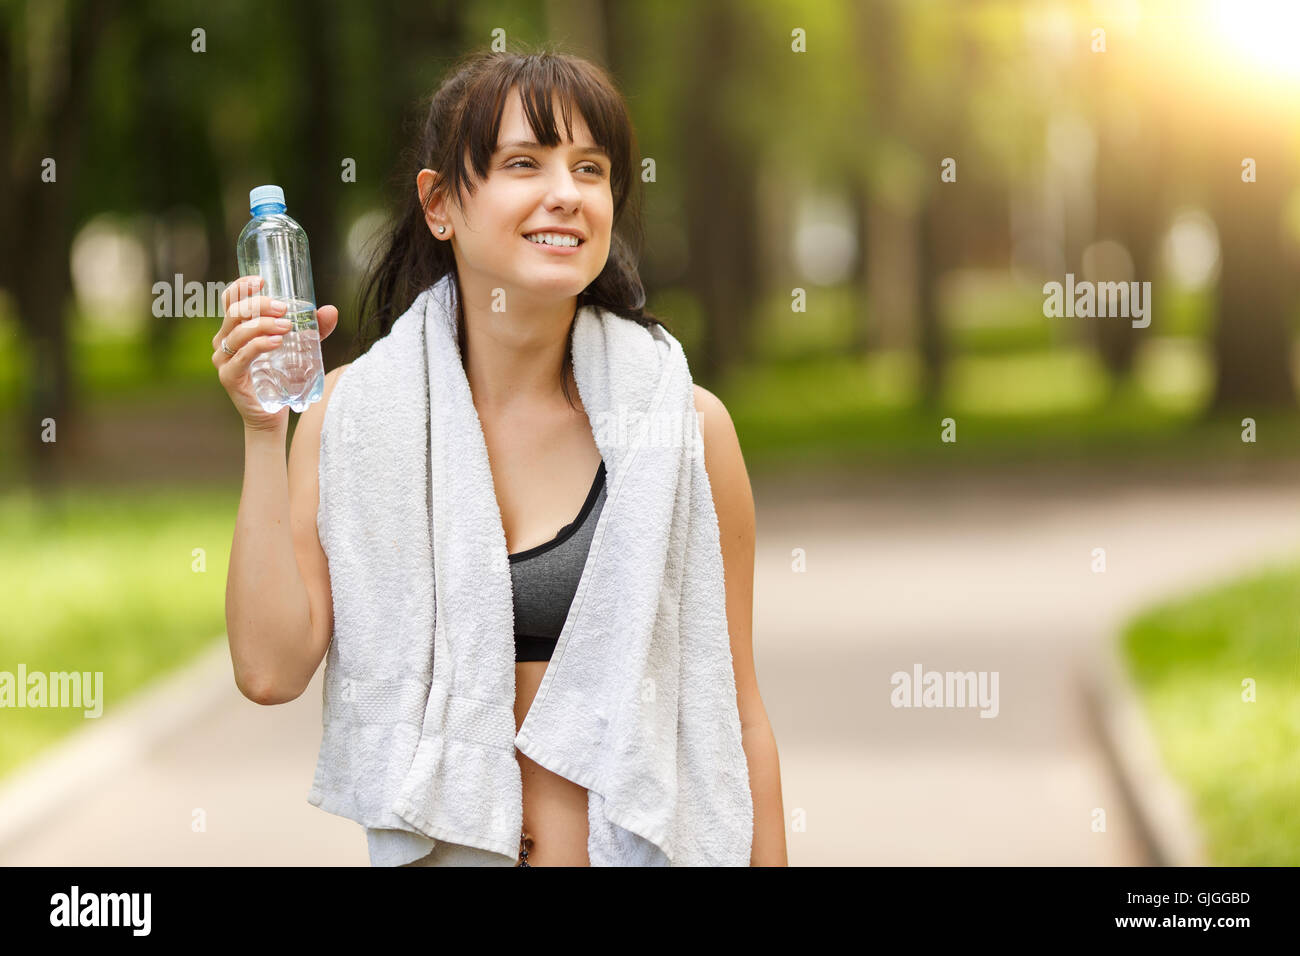 Brunette girl holding bottle of water after sport in park - Stock Image